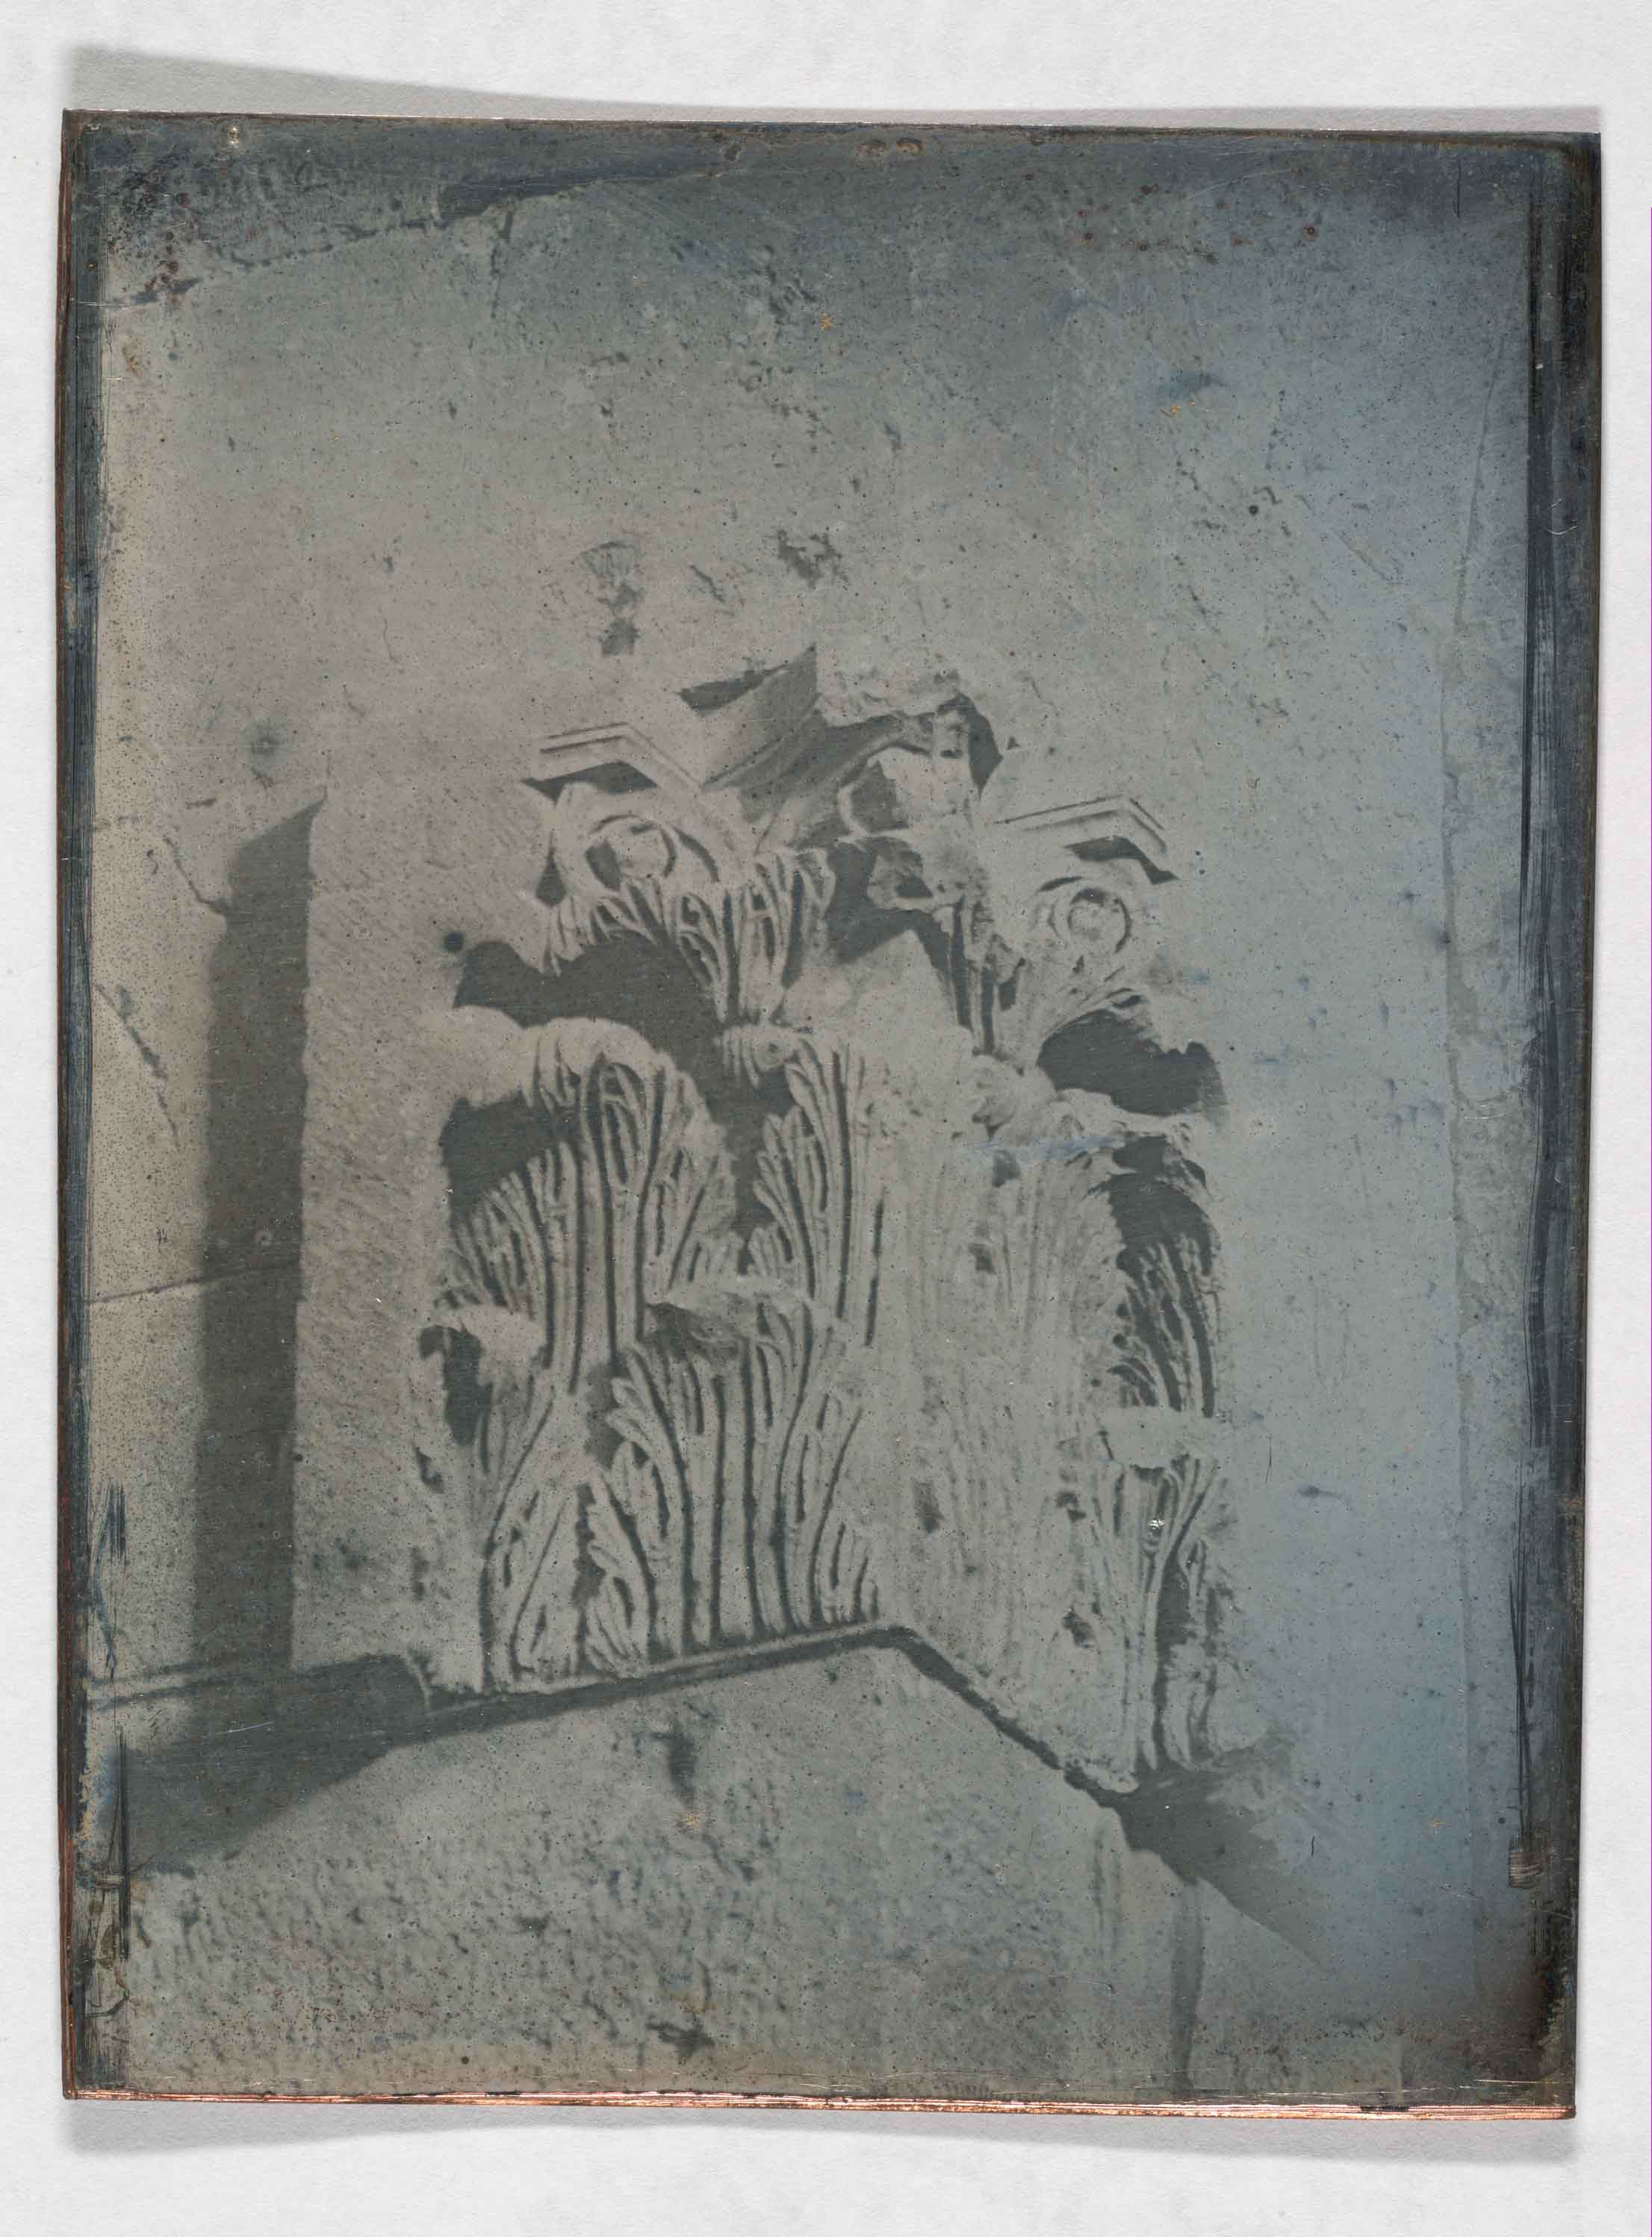 Daguerreotype photograph showing the carved elements of a capital